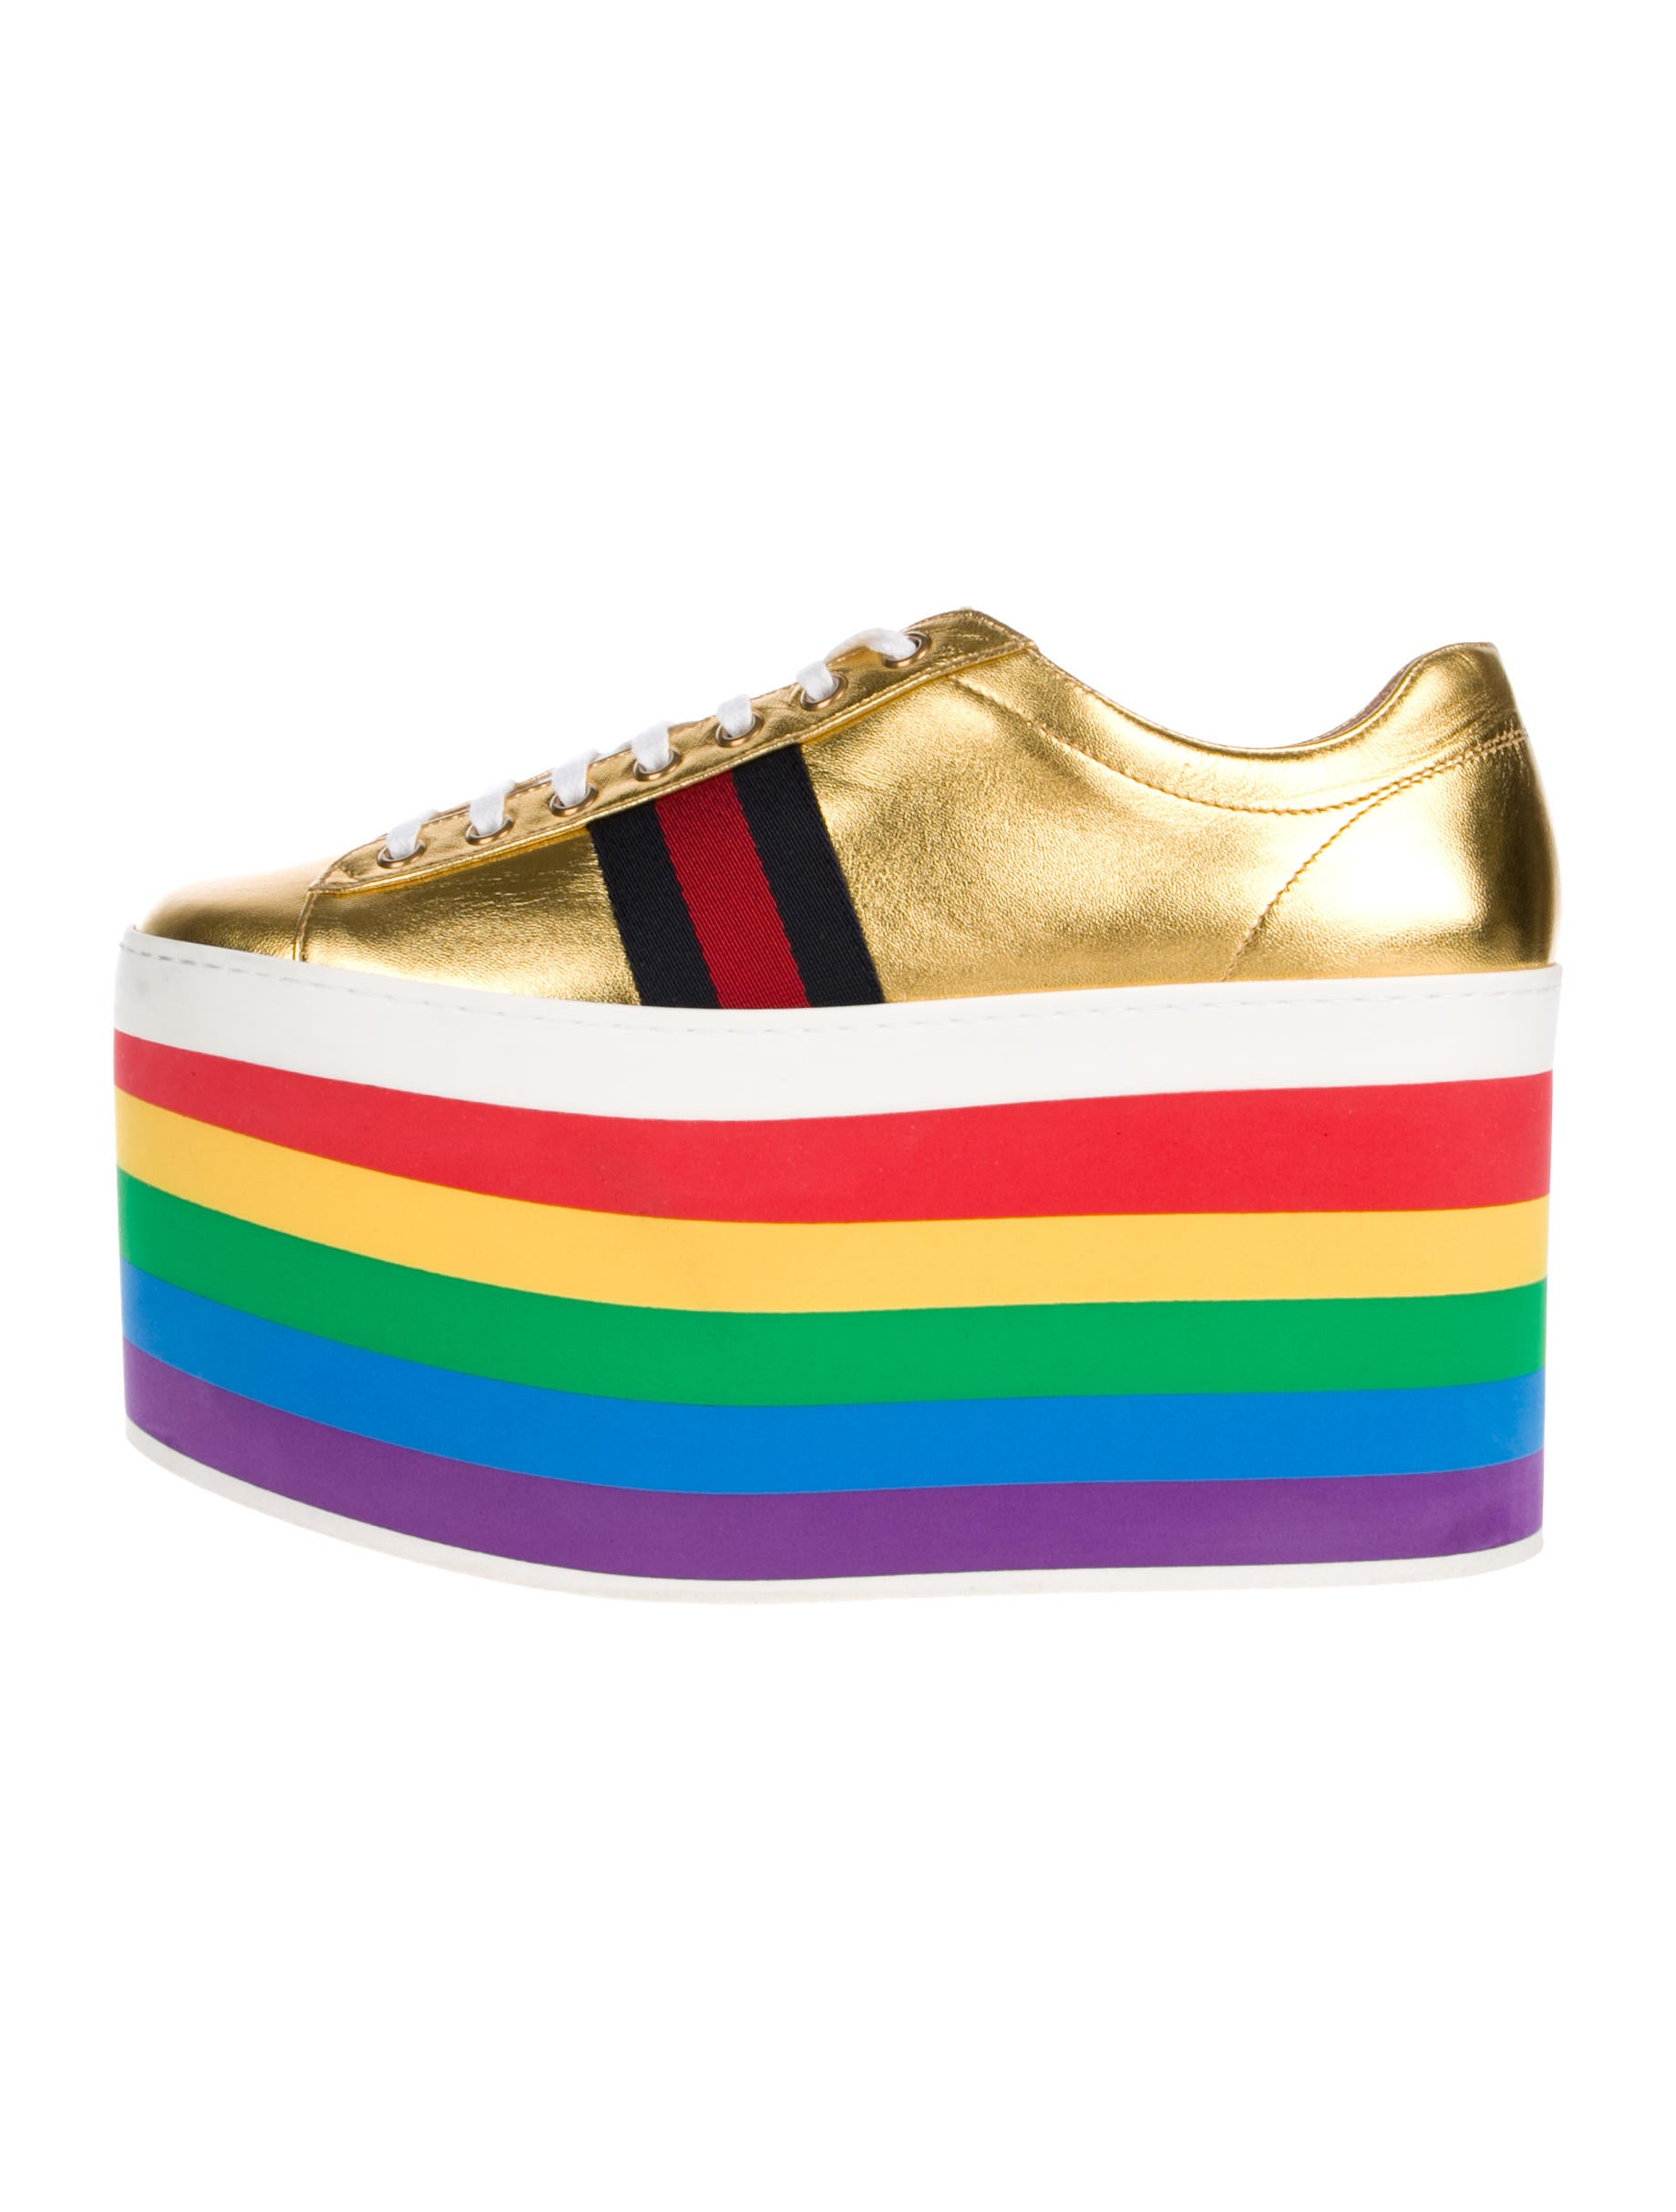 a8346eb38b1 Gucci 2017 Peggy Metallic Platform Sneakers - Shoes - GUC229862 ...